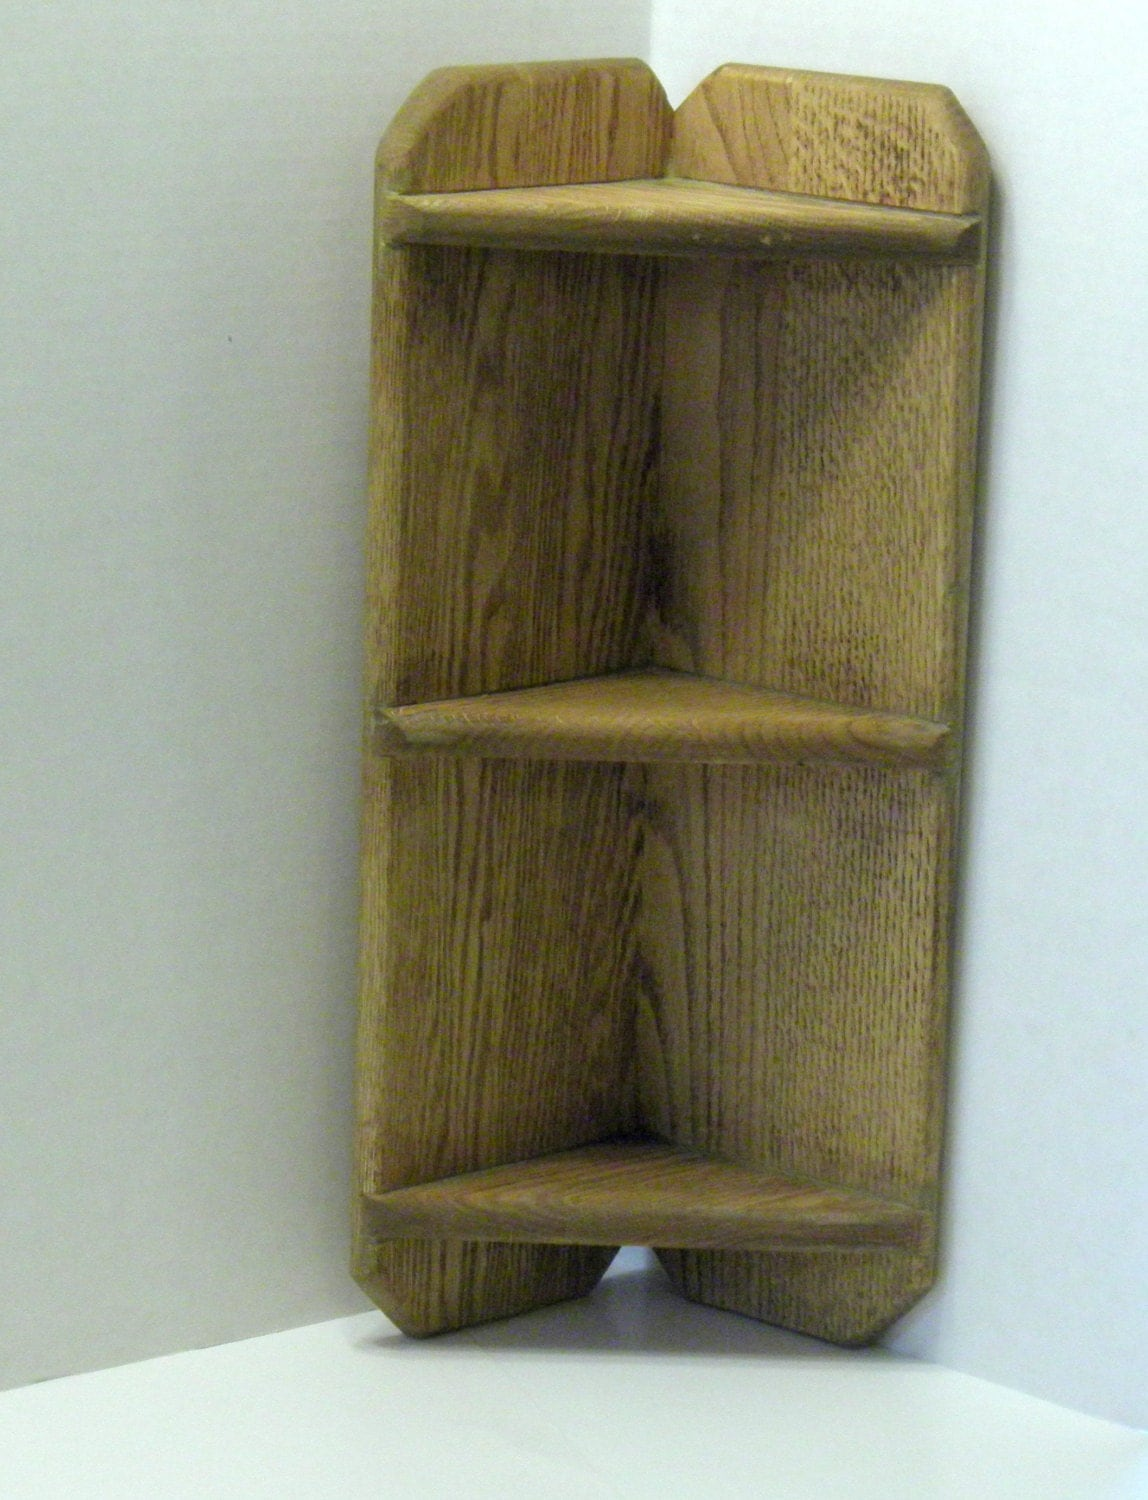 Decorative Oak Corner Shelf Handcrafted Repurposed Wood. Gray Living Room Chairs. Home Theater Living Room Furniture 2. Modern Chic Living Room Ideas. White Wood Blinds Living Room. Diy Living Room Furniture Plans. Modern Decor Living Room 2018. Small Living Room Styling Ideas. Living Room Pillows Target